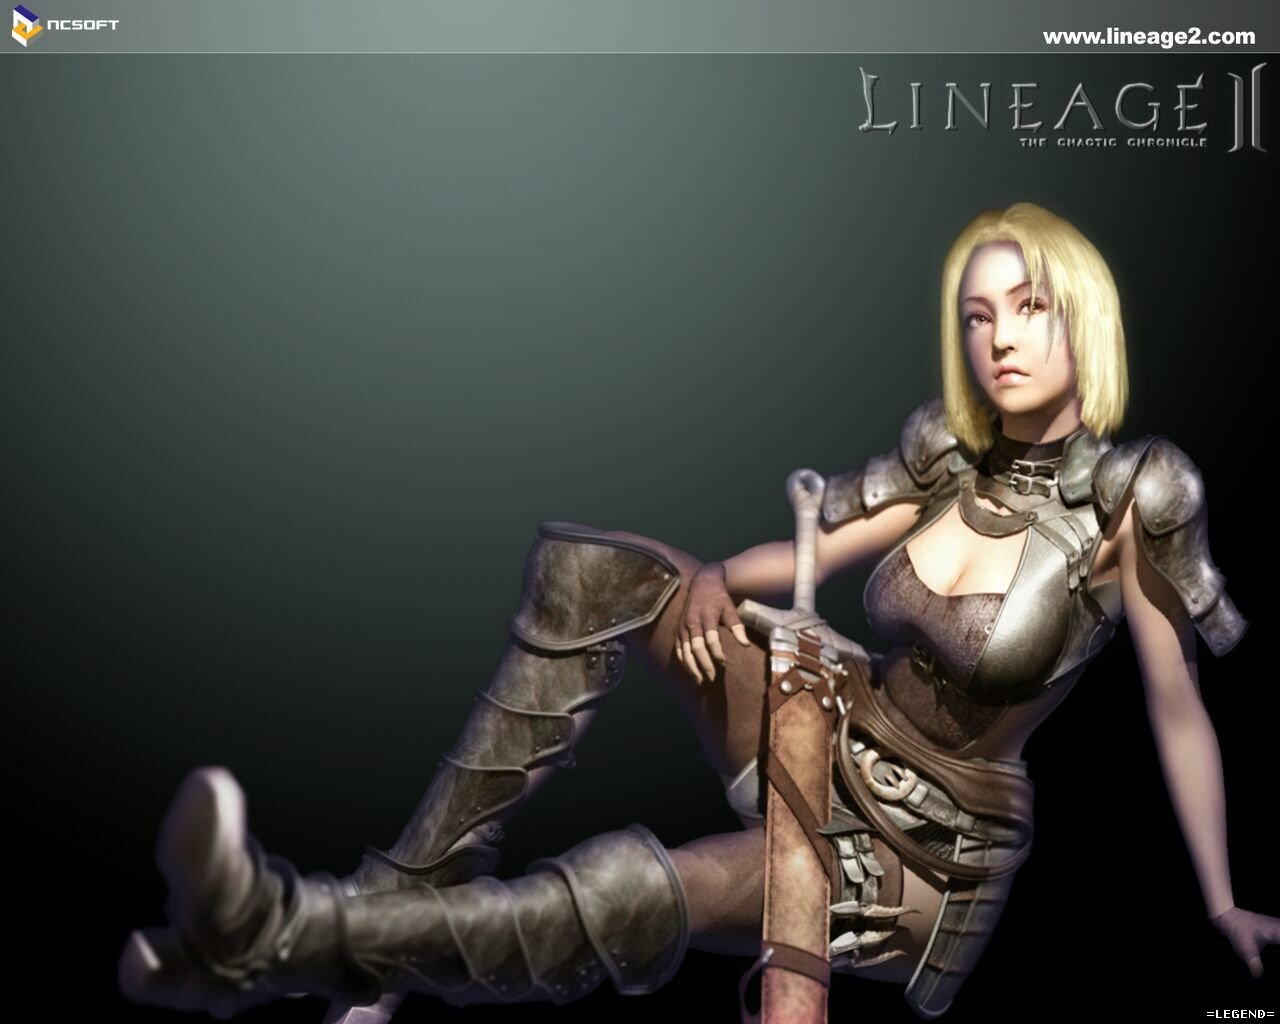 Lineage 2 erotic arts nude pictures